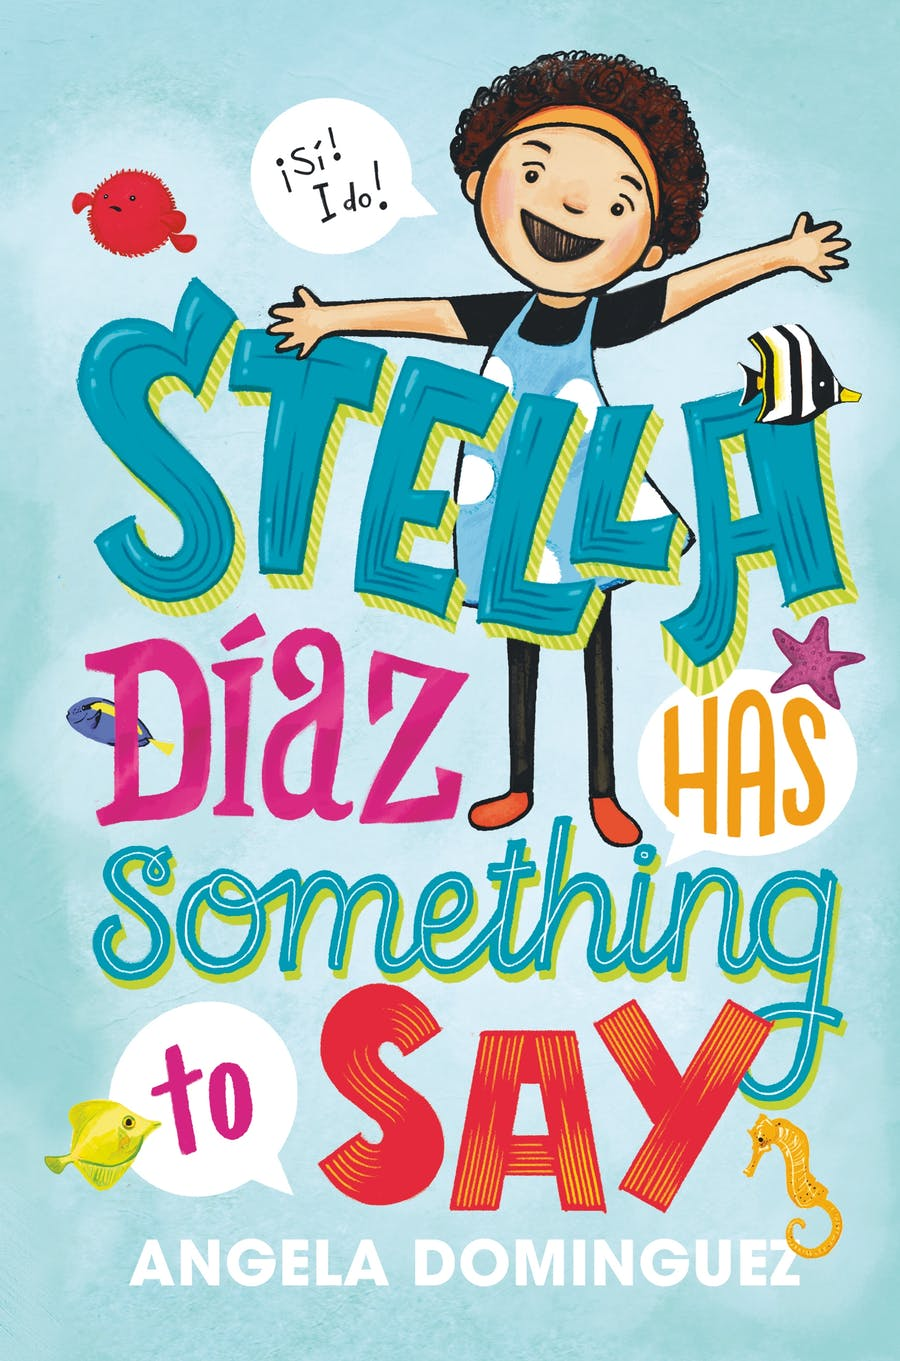 Stella Díaz Has Something to Say by Angela Dominguez